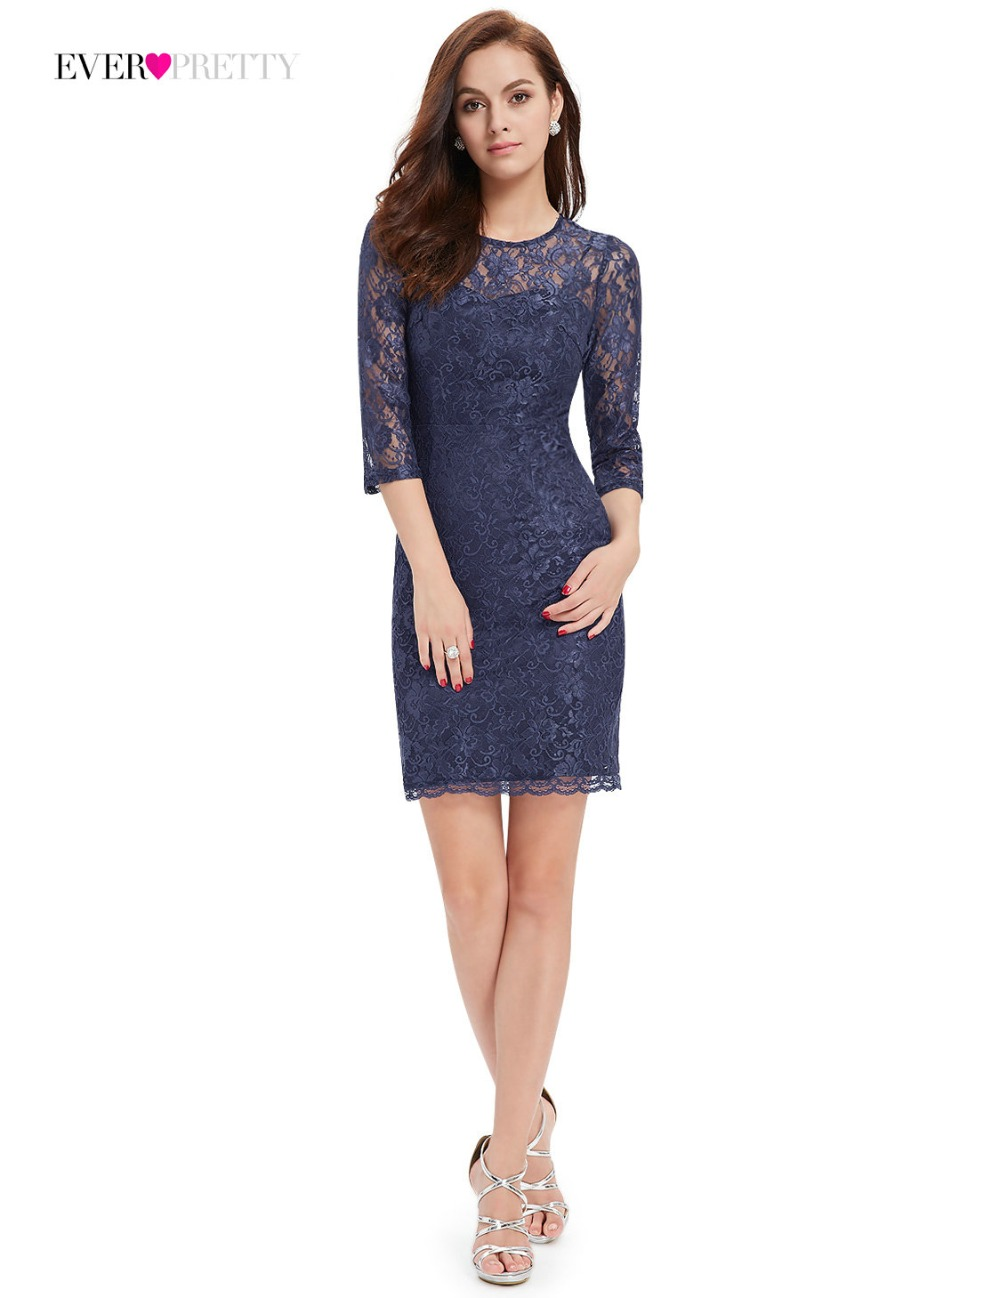 02f0a1ad9c  Clearance Sale  New Cocktail Dress Ever Pretty HE03792 Women Short Unique  lace Lace 3 4 Sleeve Elegant Cocktail Dresses-in Cocktail Dresses from  Weddings ...